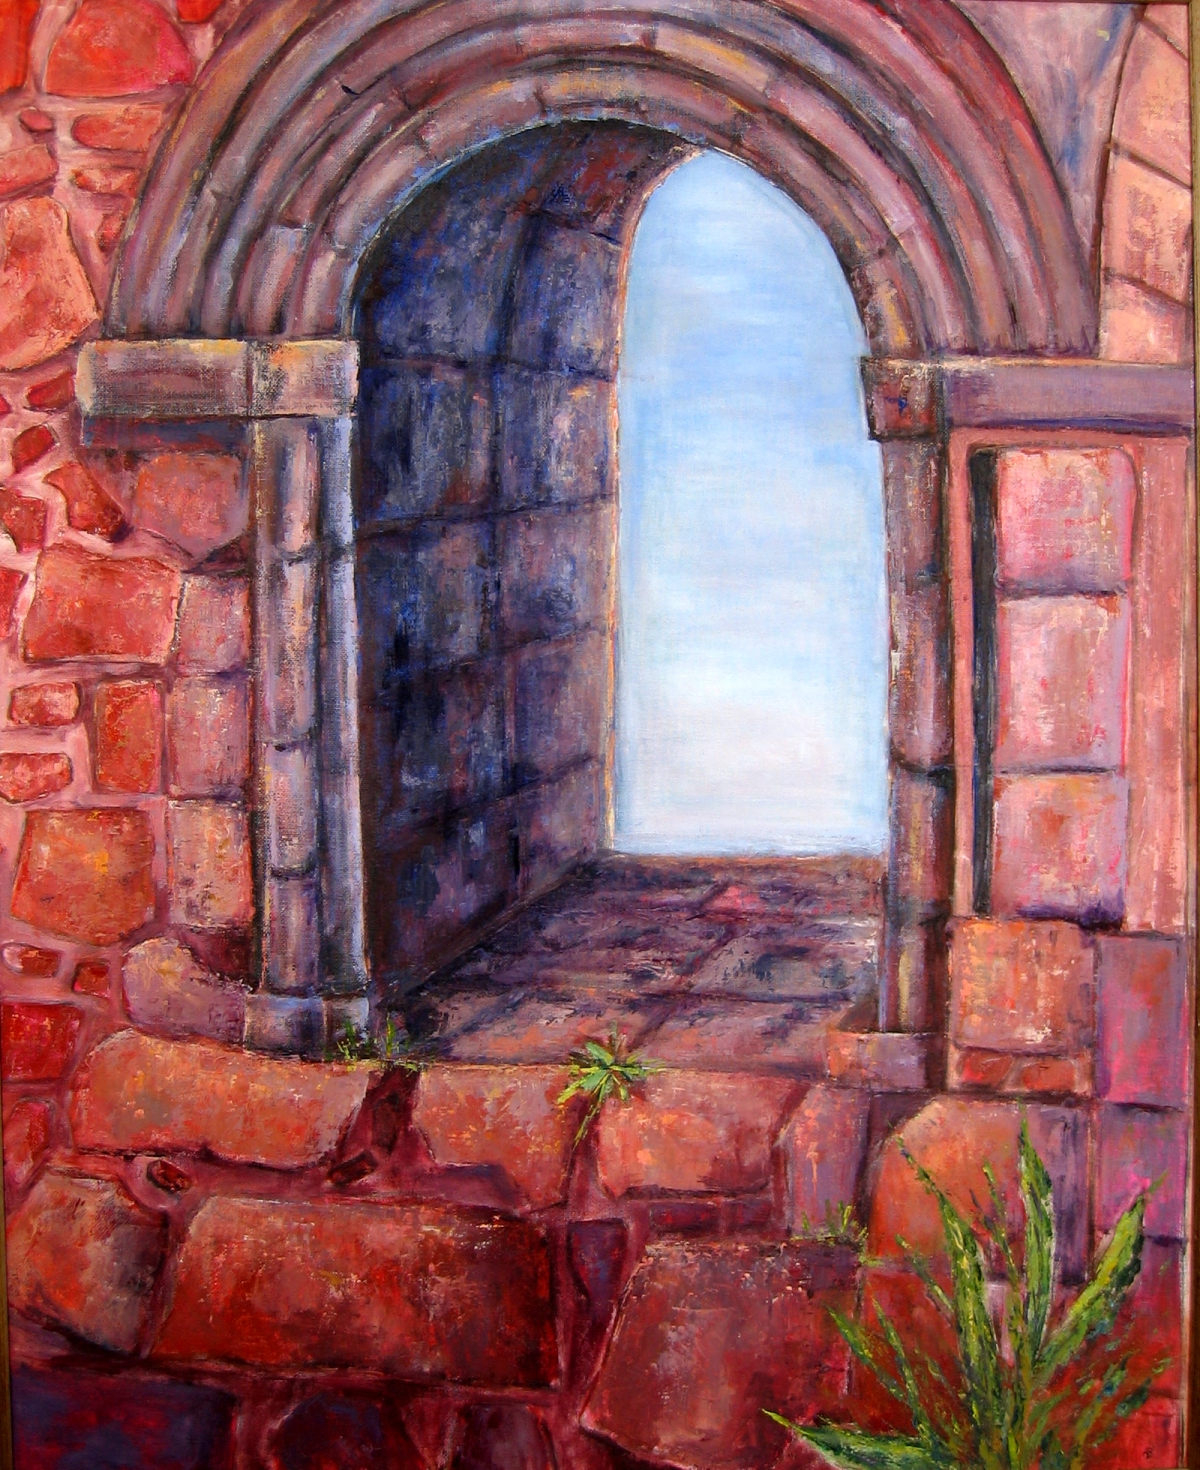 torre-abbey-window-oil-on-board-60cm-x-76cm